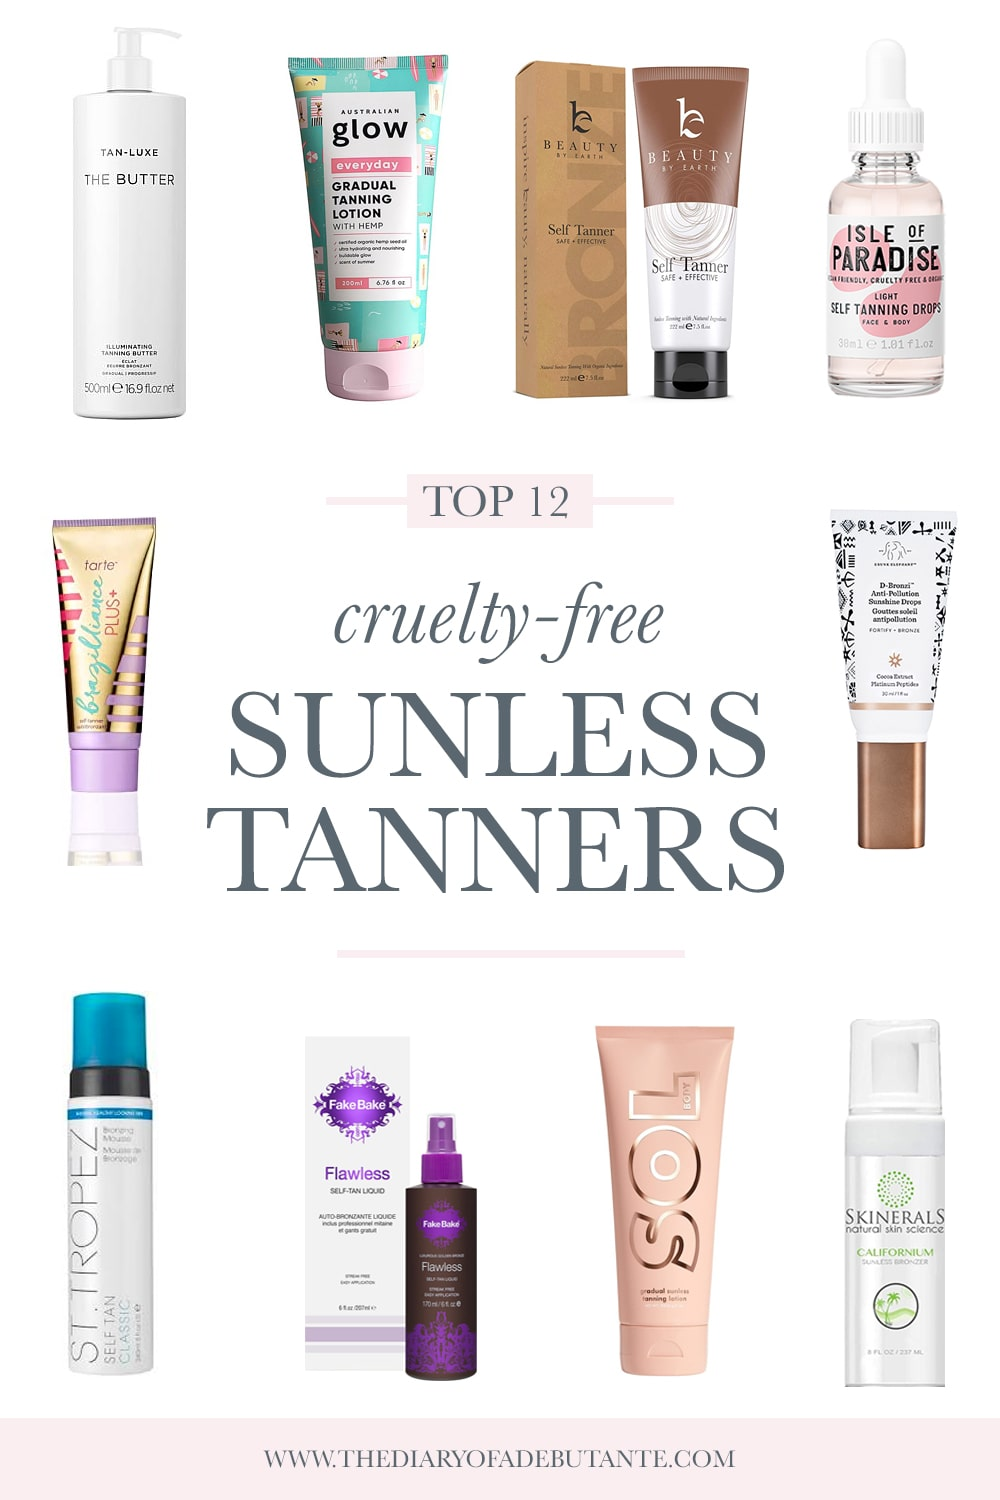 Best cruelty free self tanner products rounded up by cruelty free beauty blogger Stephanie Ziajka on Diary of a Debutante